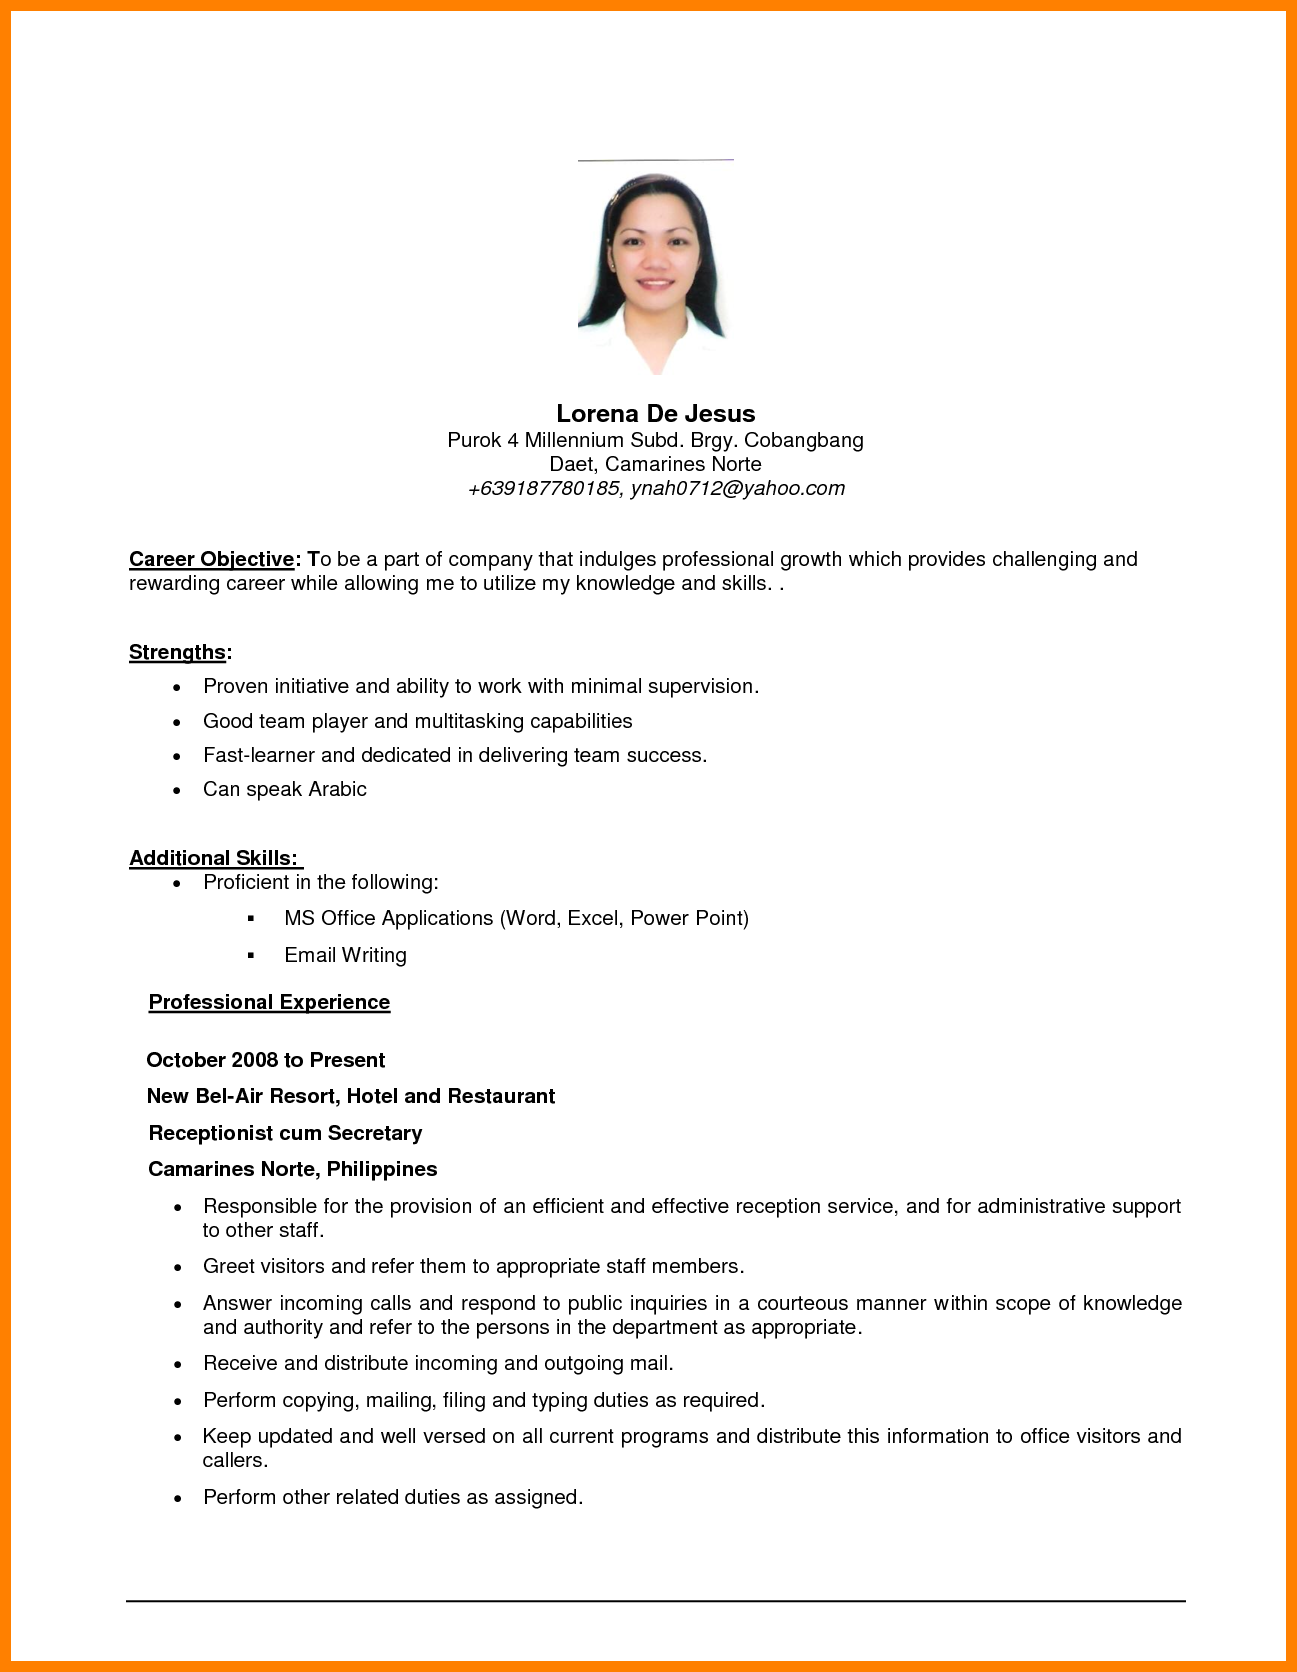 Resume Objectives Samples Resume Objective Sample Computer Skills Examples For Example Your